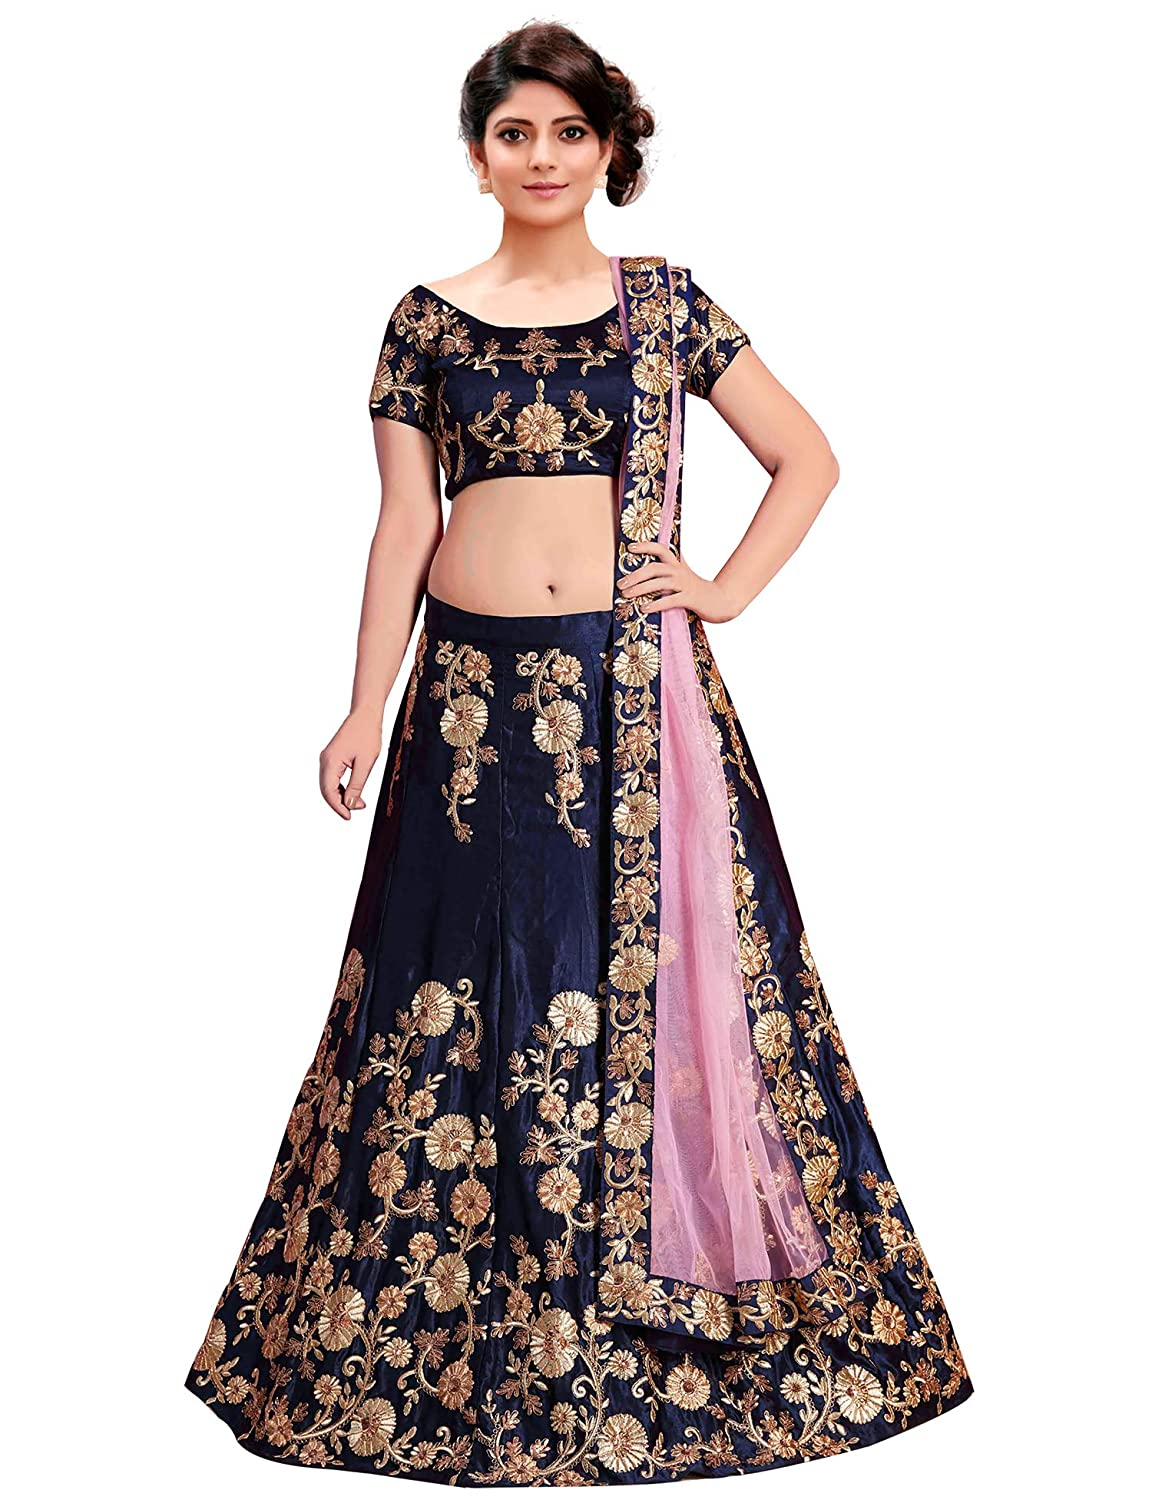 a9eb5d6de6 KEDARFAB Women's Embroidered Taffeta Silk Lehenga Choli with Blouse Piece  (Navy Blue, Free Size): Amazon.in: Clothing & Accessories